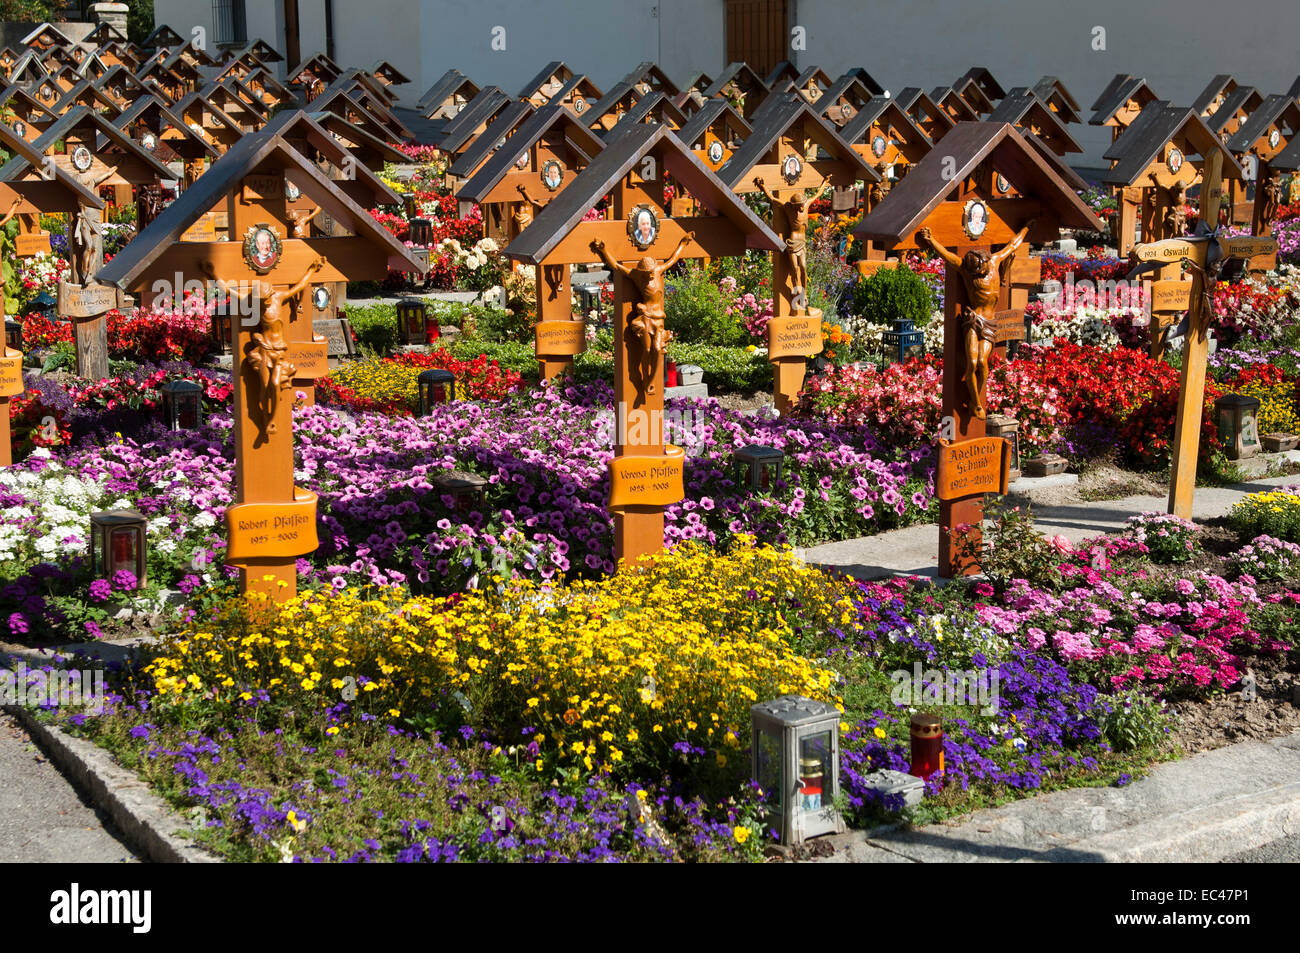 Cemetry with standardised crosses on the graves, Ausserberg, Valais, Switzerland - Stock Image